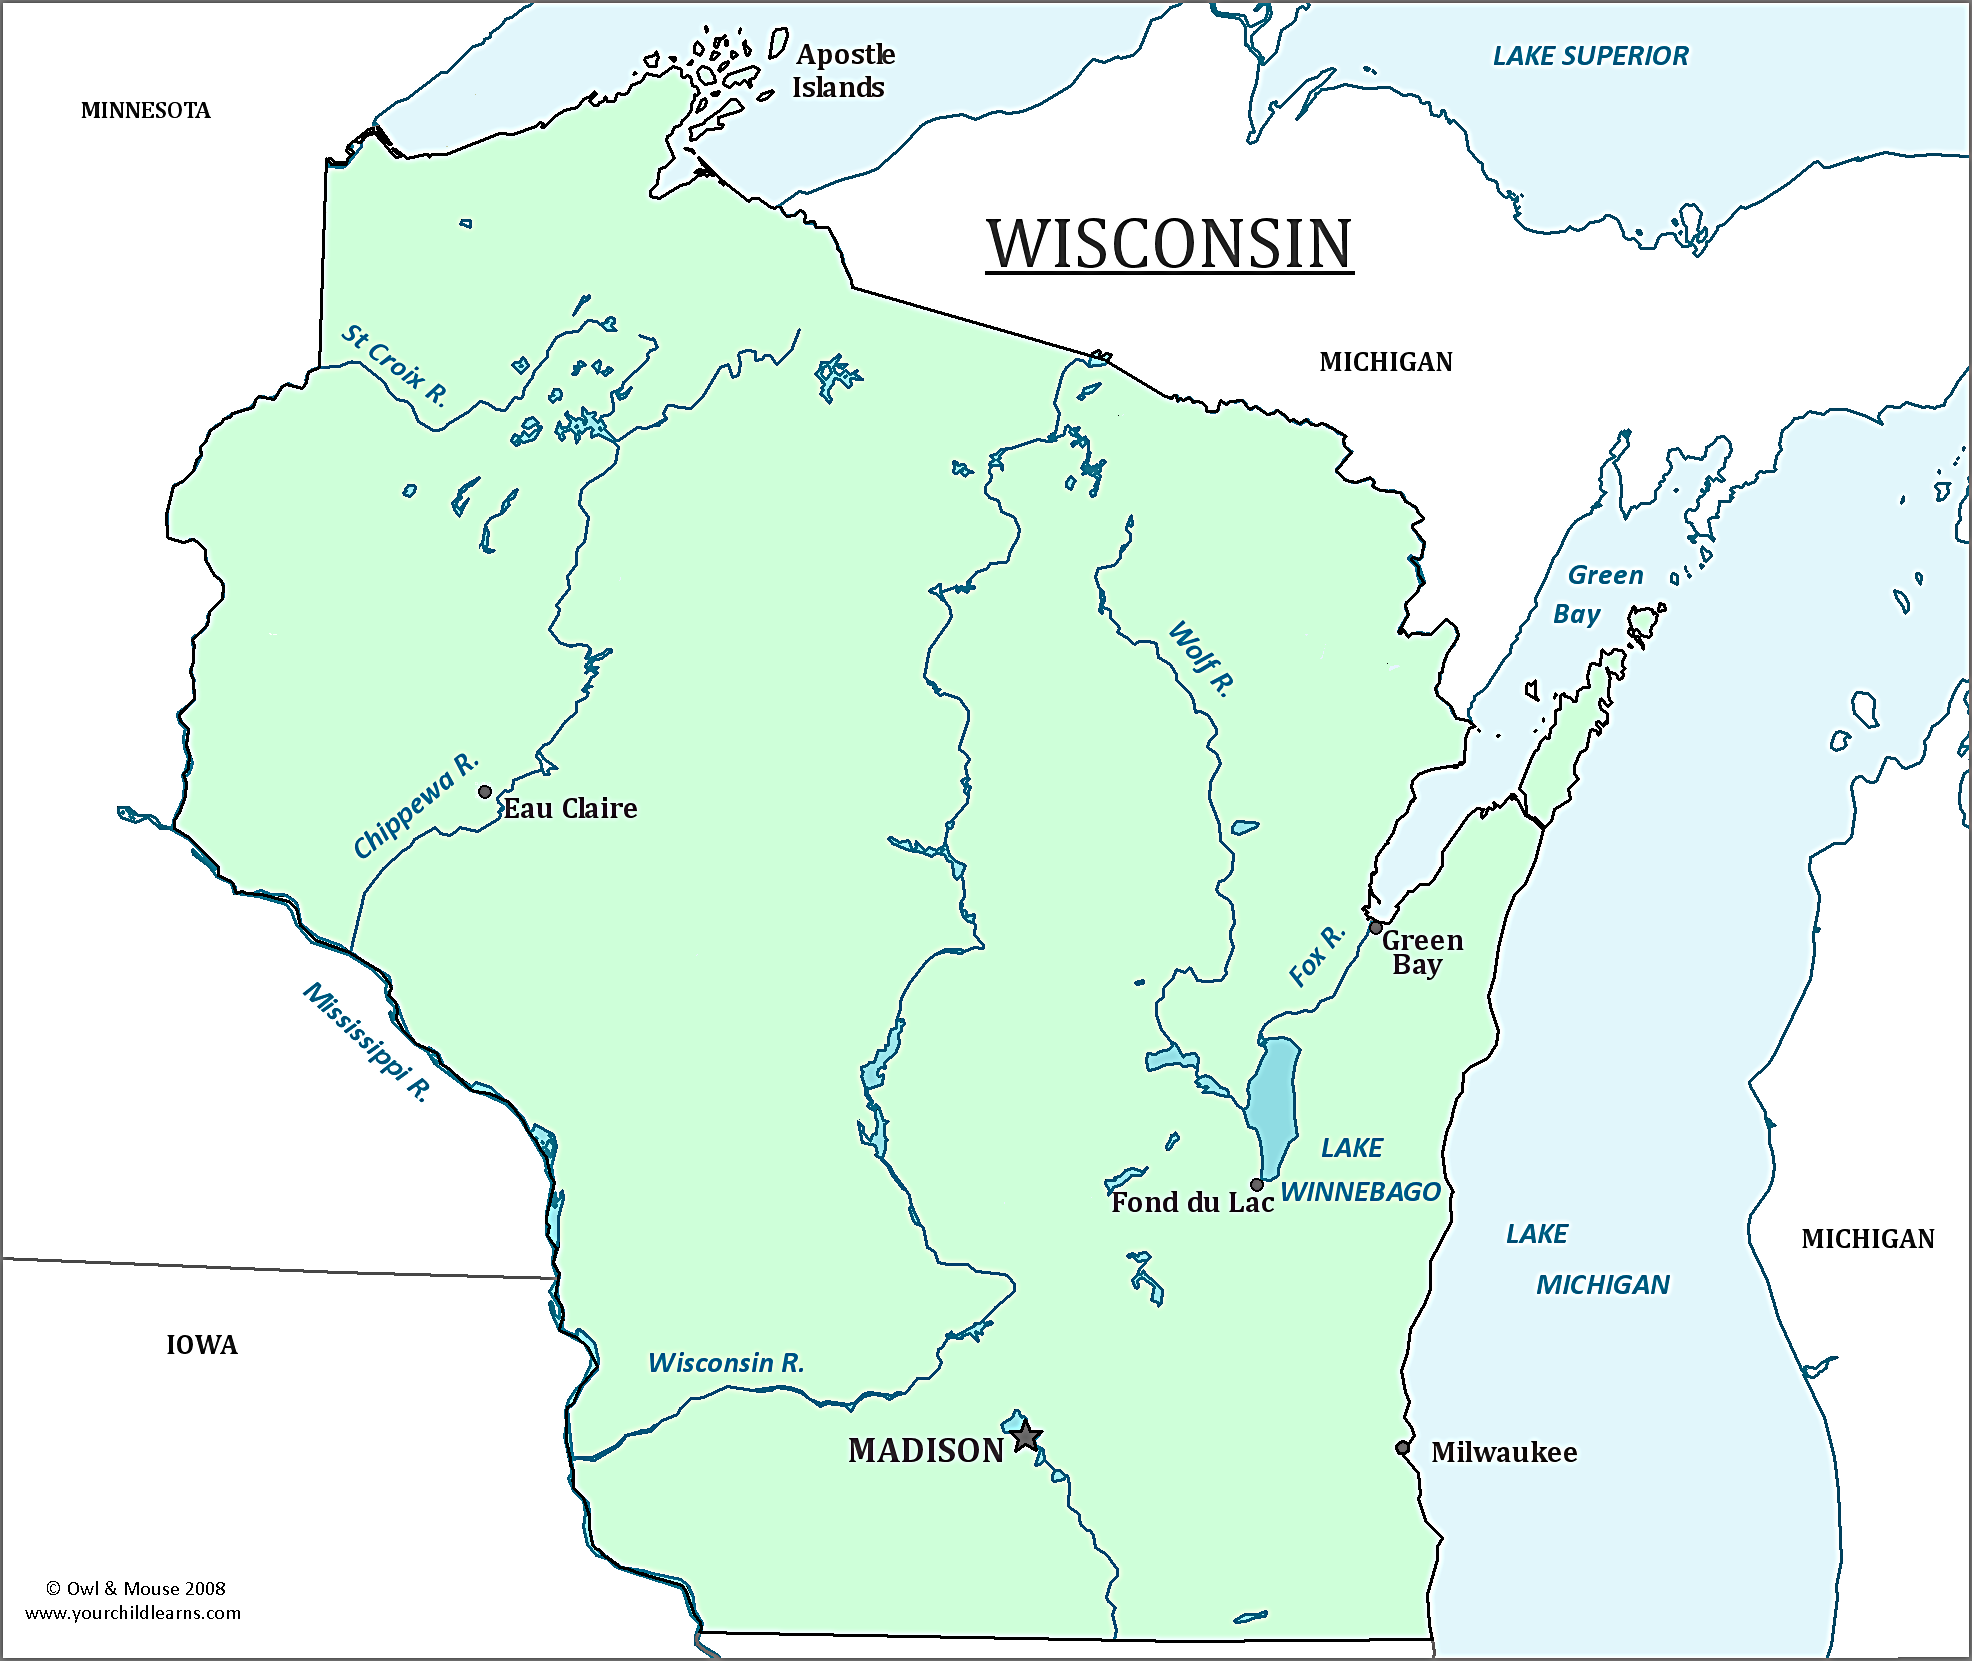 Wisconsin State Map - Map of Wisconsin and Information About the State